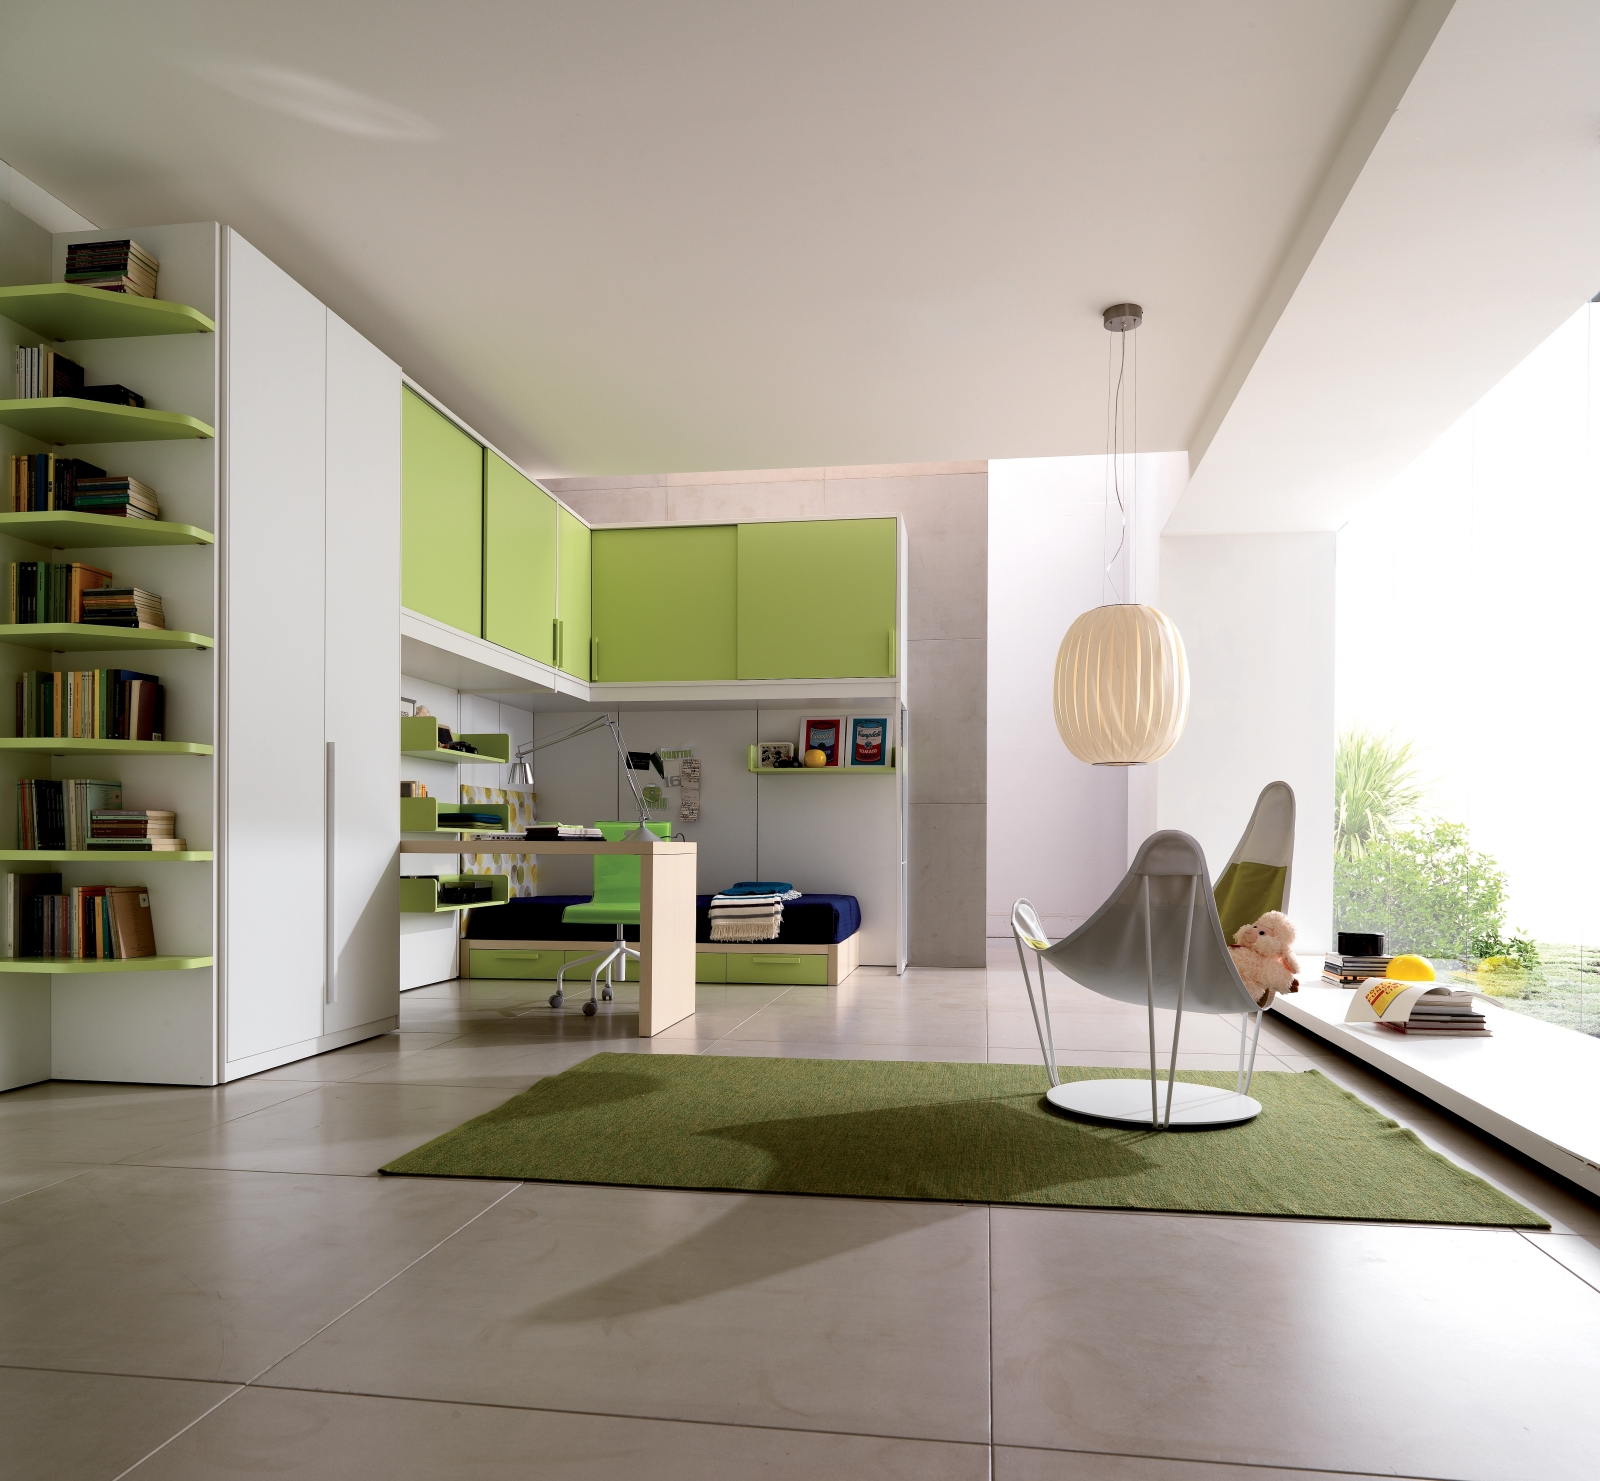 dormitorio, ideas, interiores, muebles